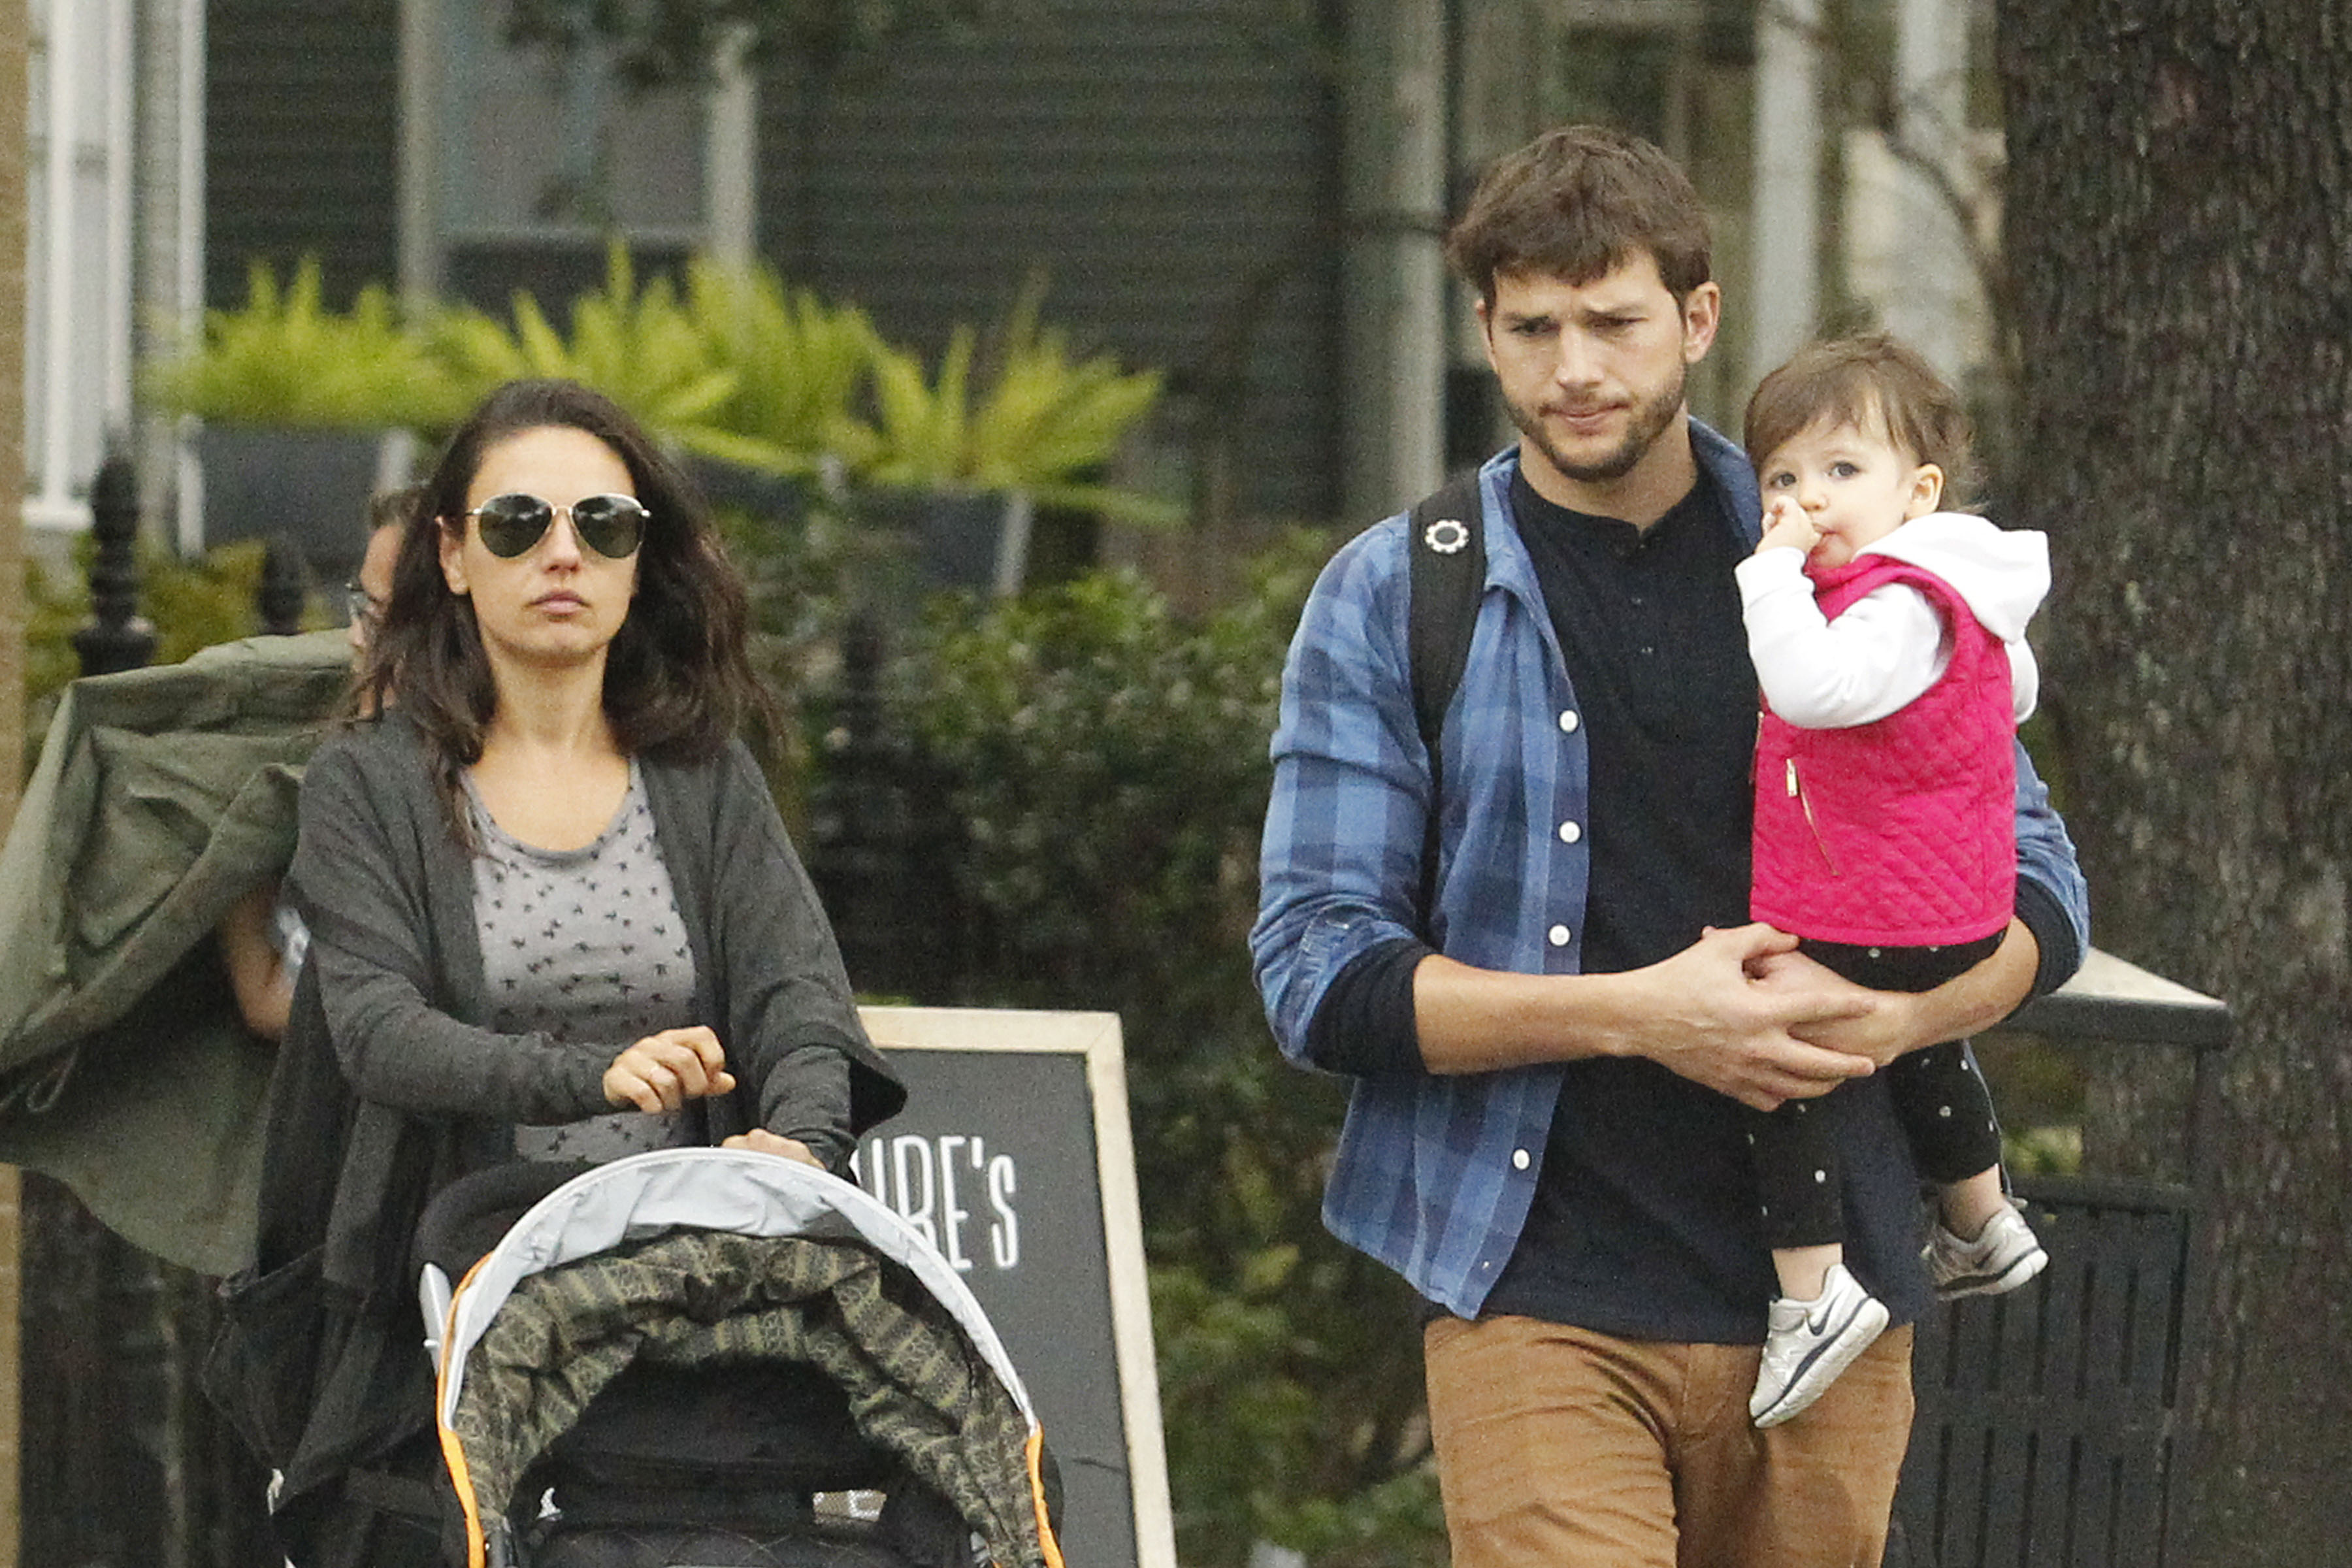 Photo © 2016 Pacific Coast News/The Grosby Group EXCLUSIVE New Orleans, January 08, 2016. Mila Kunis, Ashton Kutcher, and baby Wyatt Isabelle Kutcher seen out for lunch in the city of New Orleans.